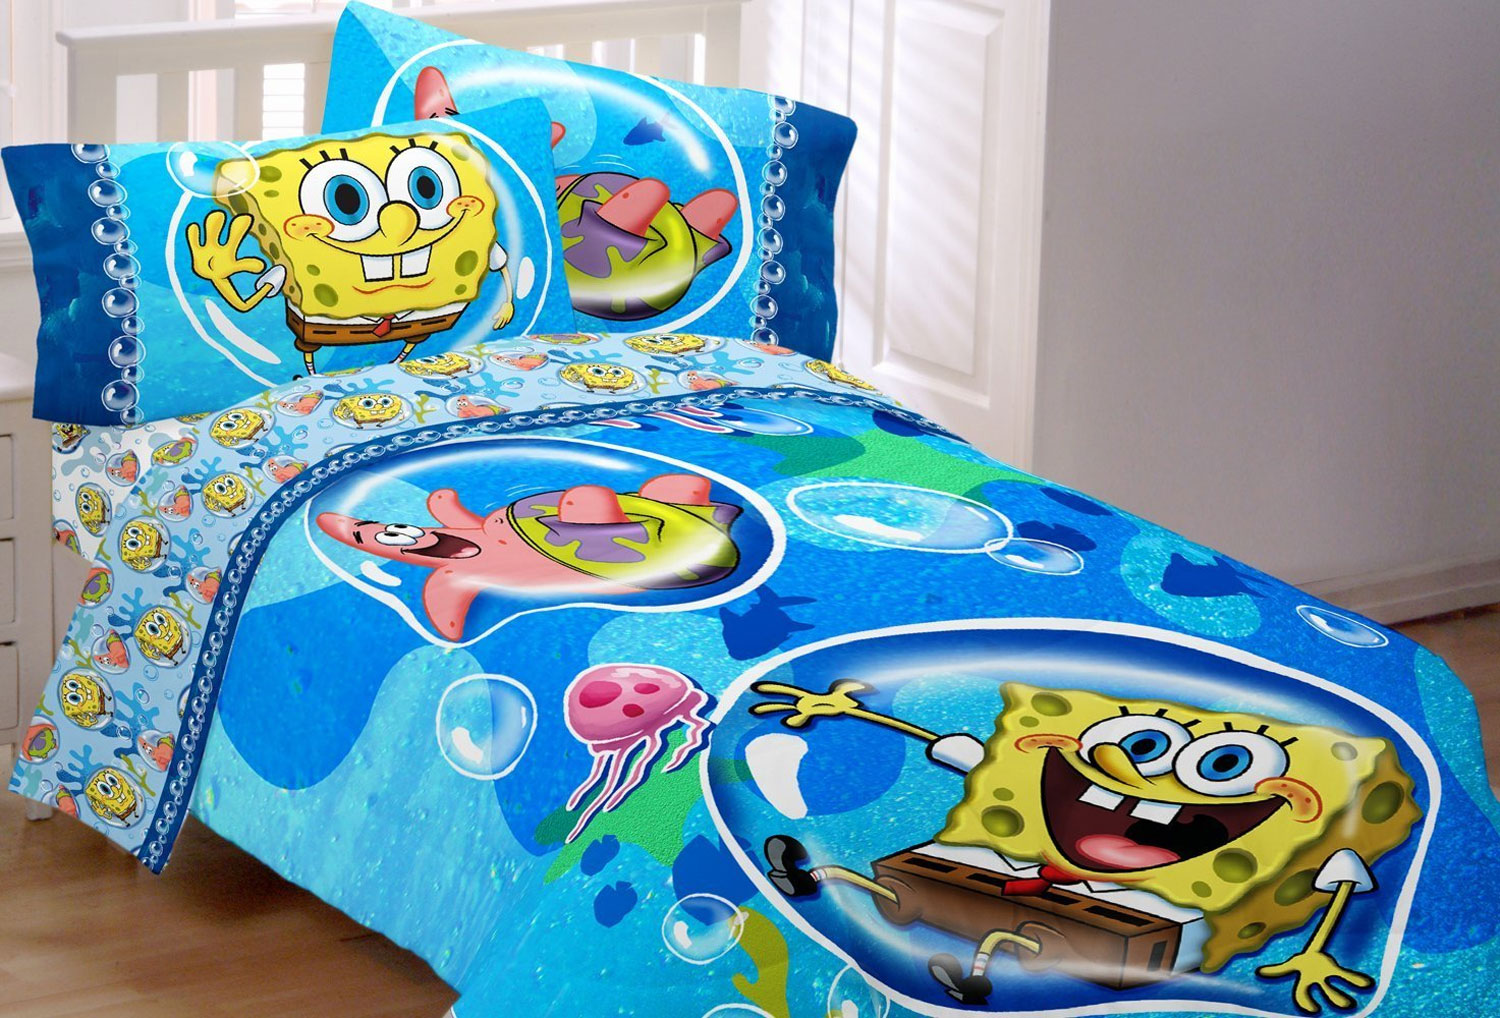 Spongebob Squarepants Bedding Set